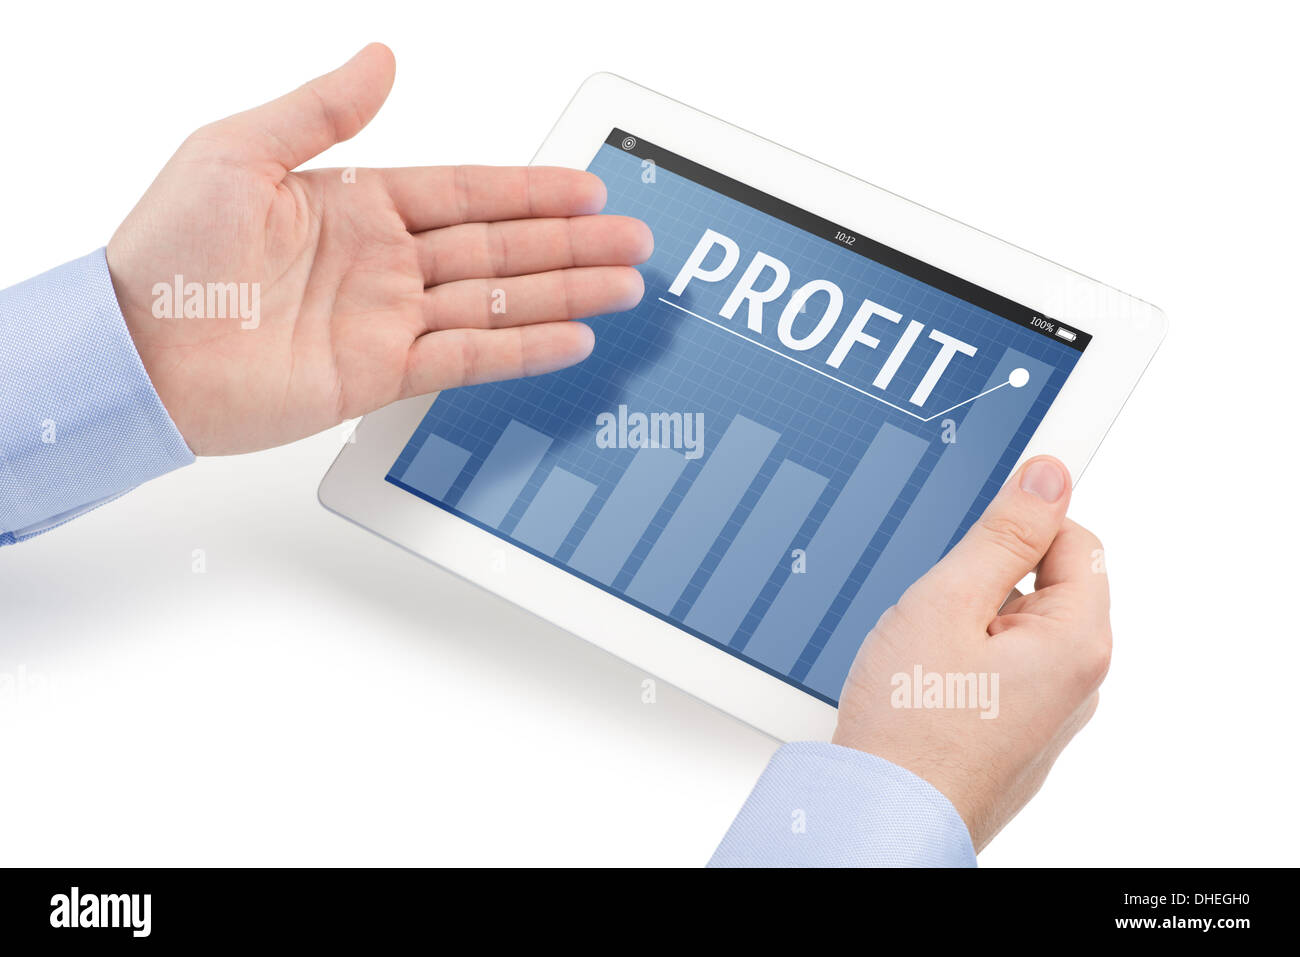 Mans hands holding a tablet computer and directing toward the screen on which displays the profit message, isolated - Stock Image